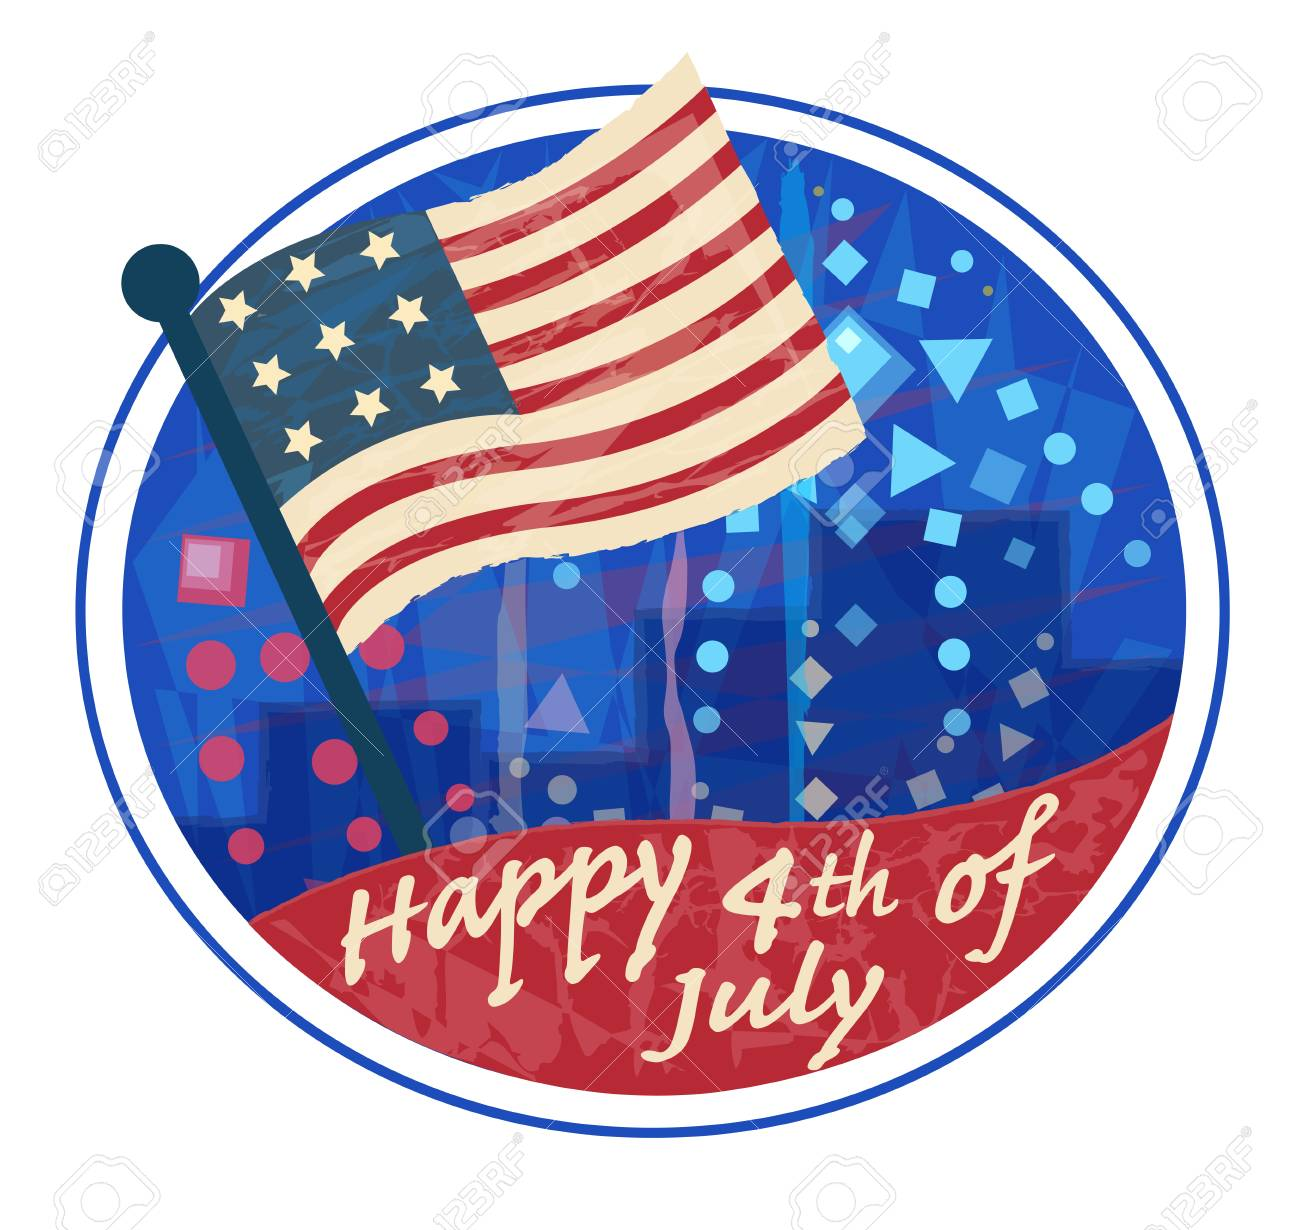 Happy 4th of July clip art with American flag and fireworks.